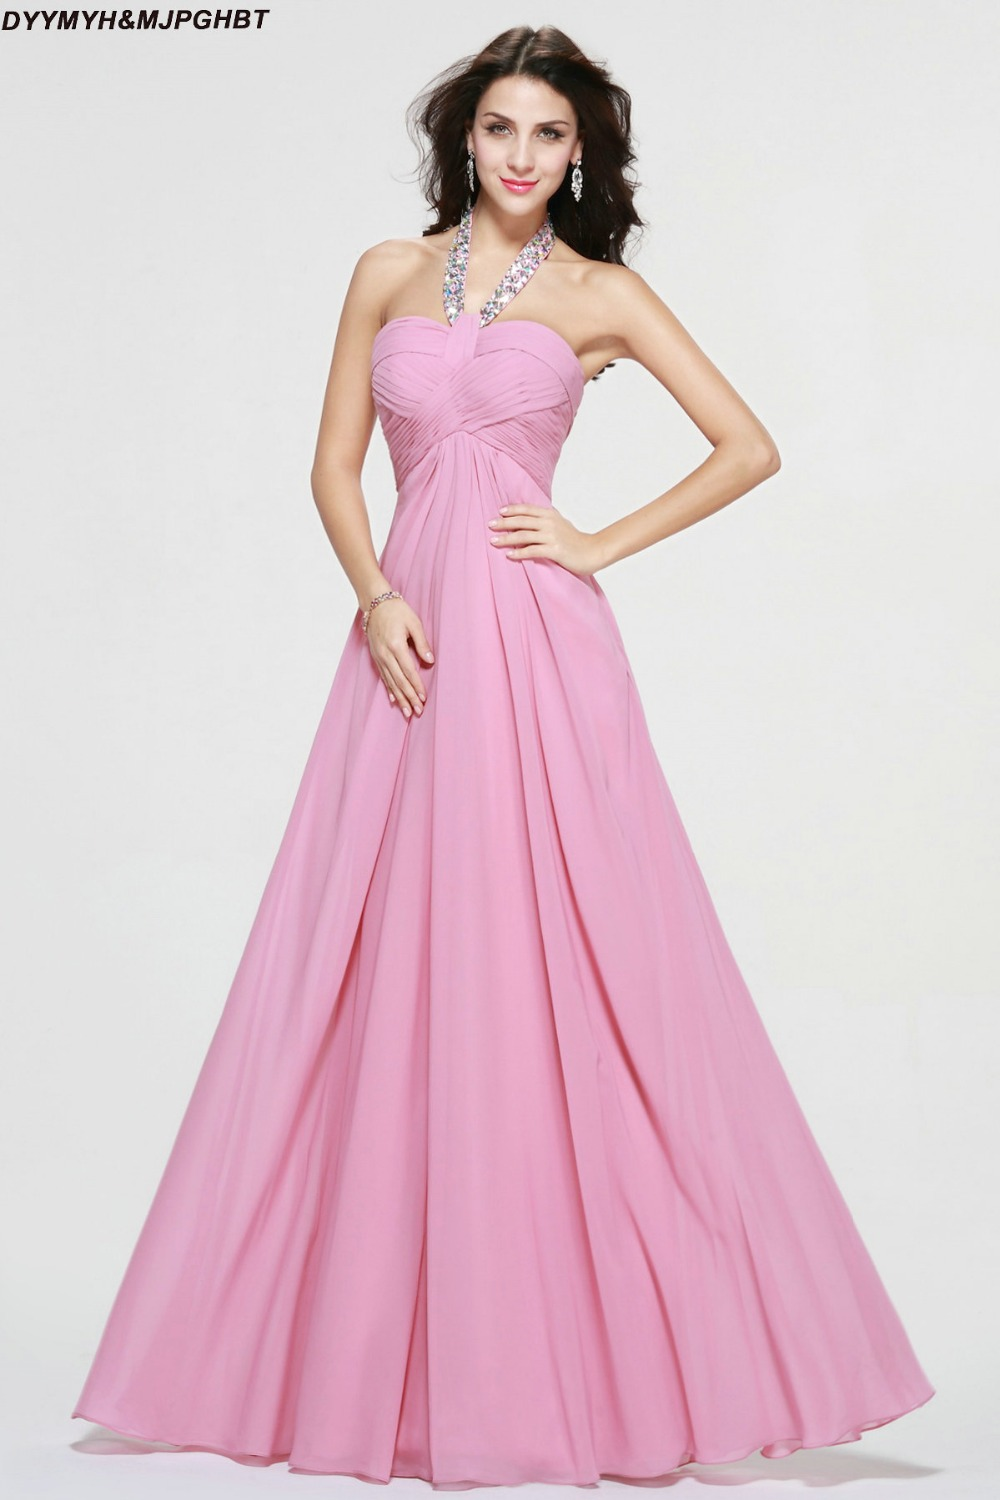 Online buy wholesale dusty pink bridesmaid dresses from china crystal halter bridesmaid dresses dusty pink open back with bow long baby pink maid of honor ombrellifo Gallery